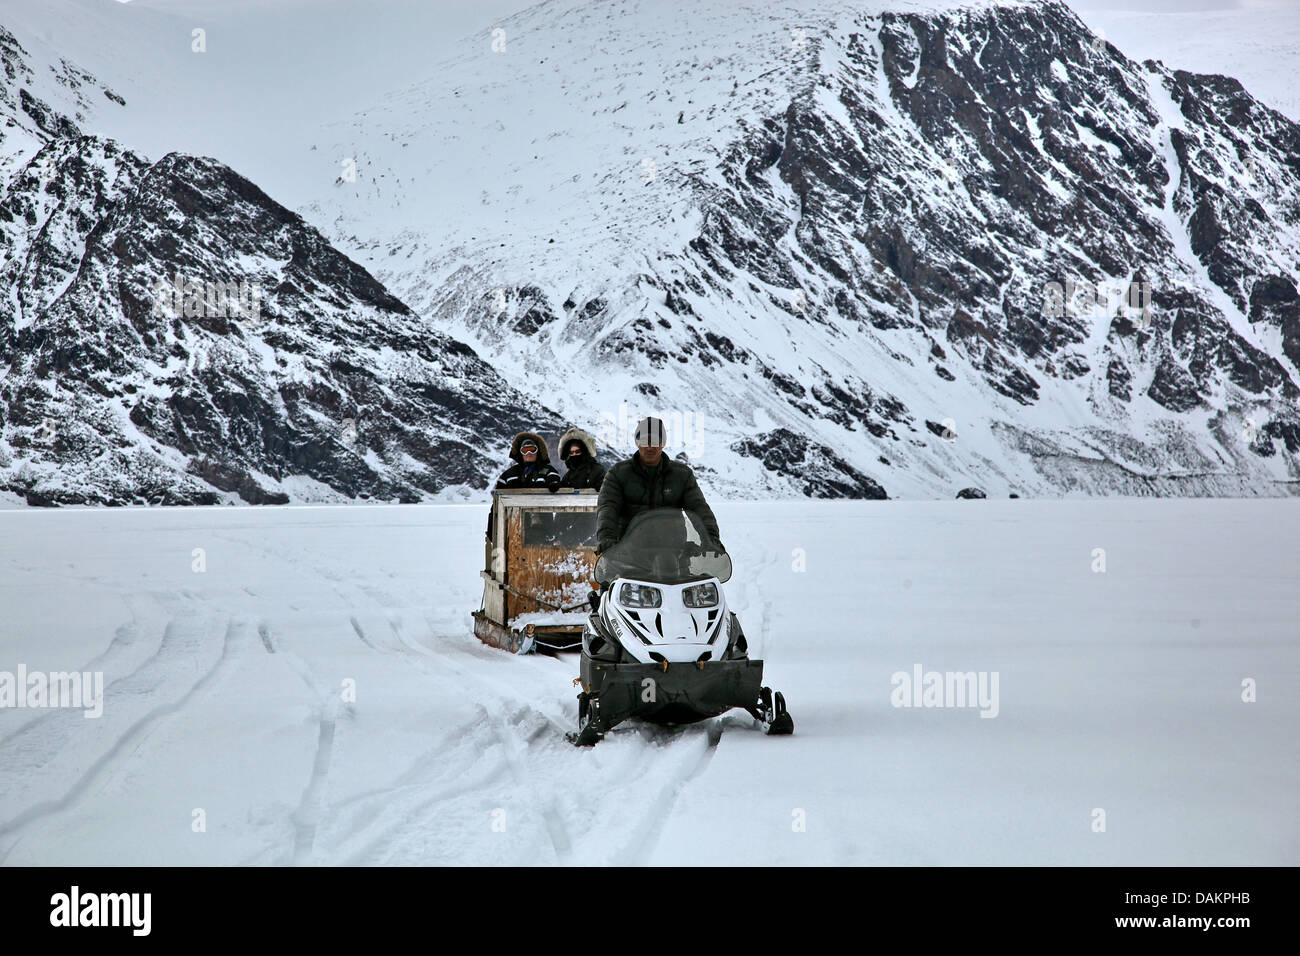 three persons with sleds in arctic landscape, Canada, Nunavut - Stock Image